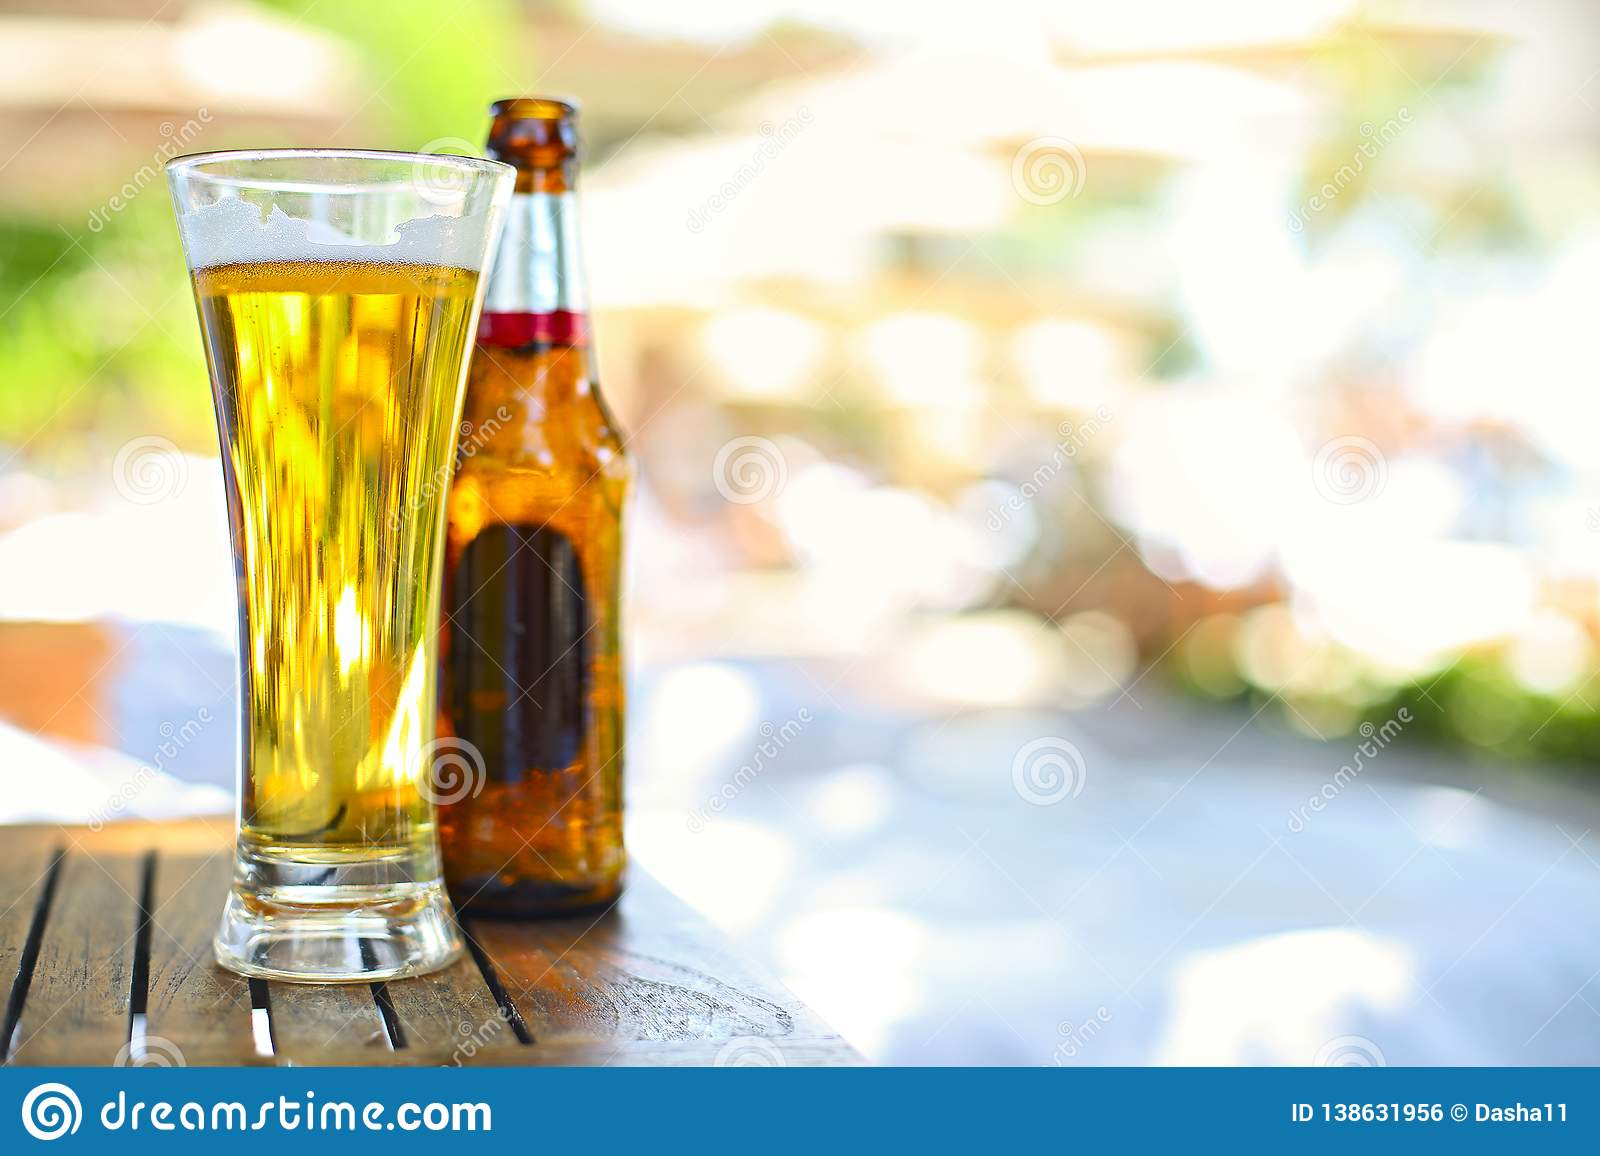 Closeup view of beer bottle and the glass in the garden